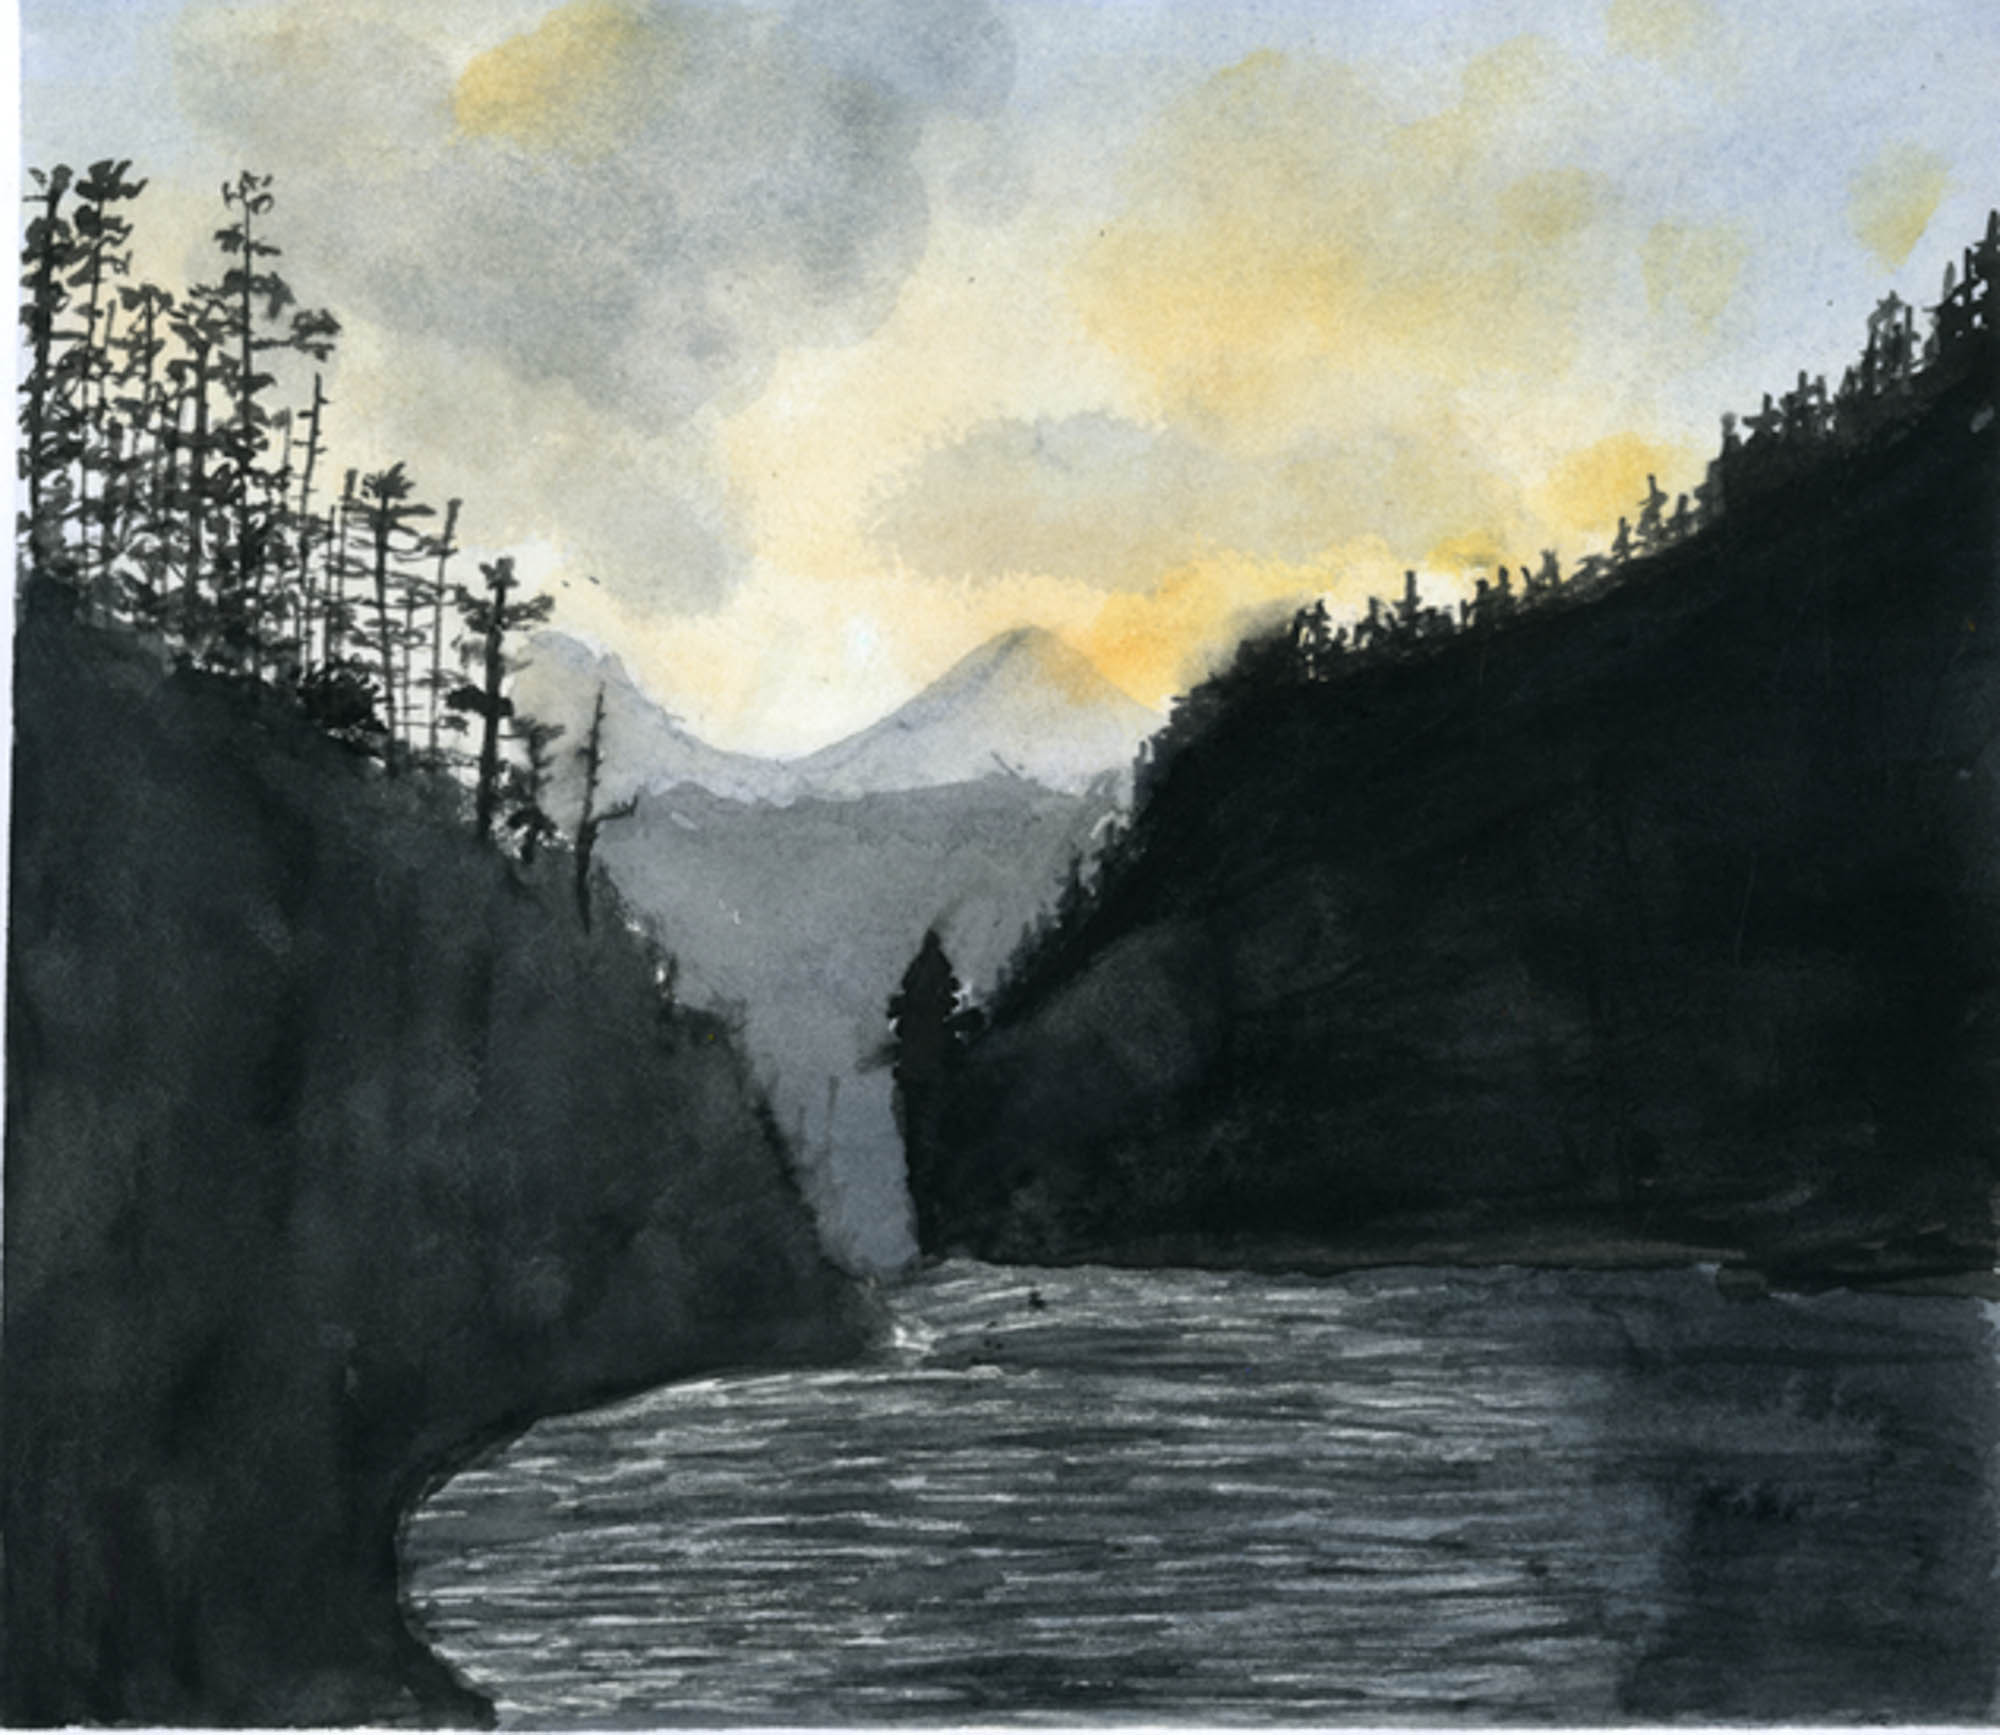 Alaskan Cove,Emma Ratshin, age 13Seattle, WashingtonLakeside Middle SchoolTeacher: Alicia Hokanson,2013 River of Words Finalist